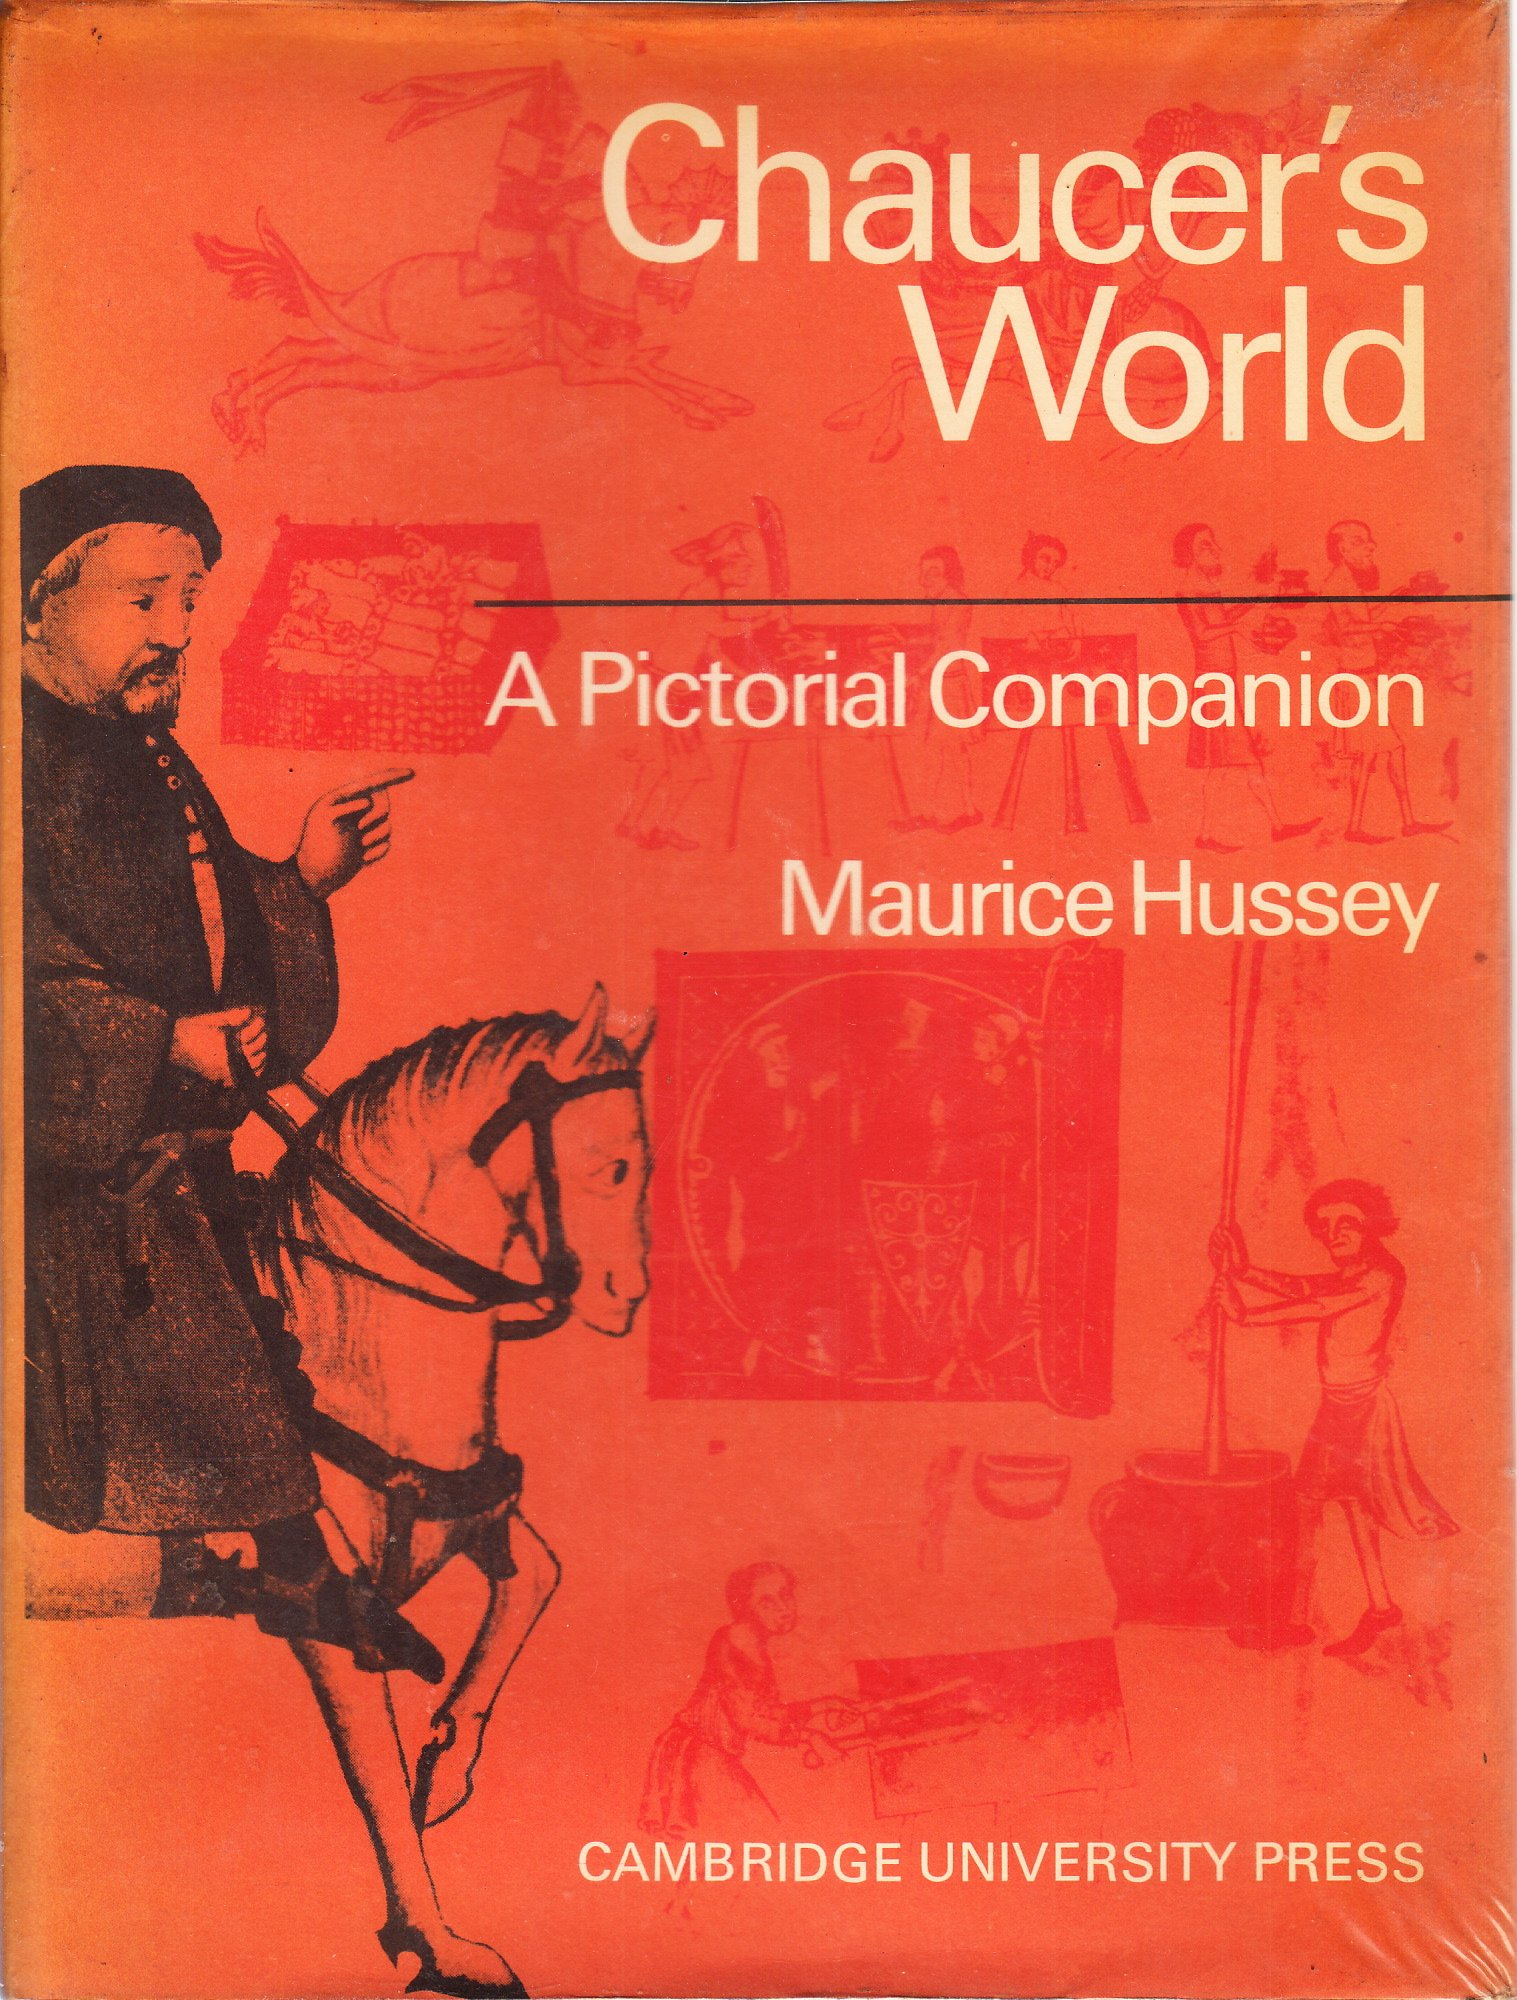 a review of geoffrey chaucers story the merchants tale A short geoffrey chaucer biography describes geoffrey chaucer's life, times, and work also explains the historical and literary context that influenced the canterbury tales.